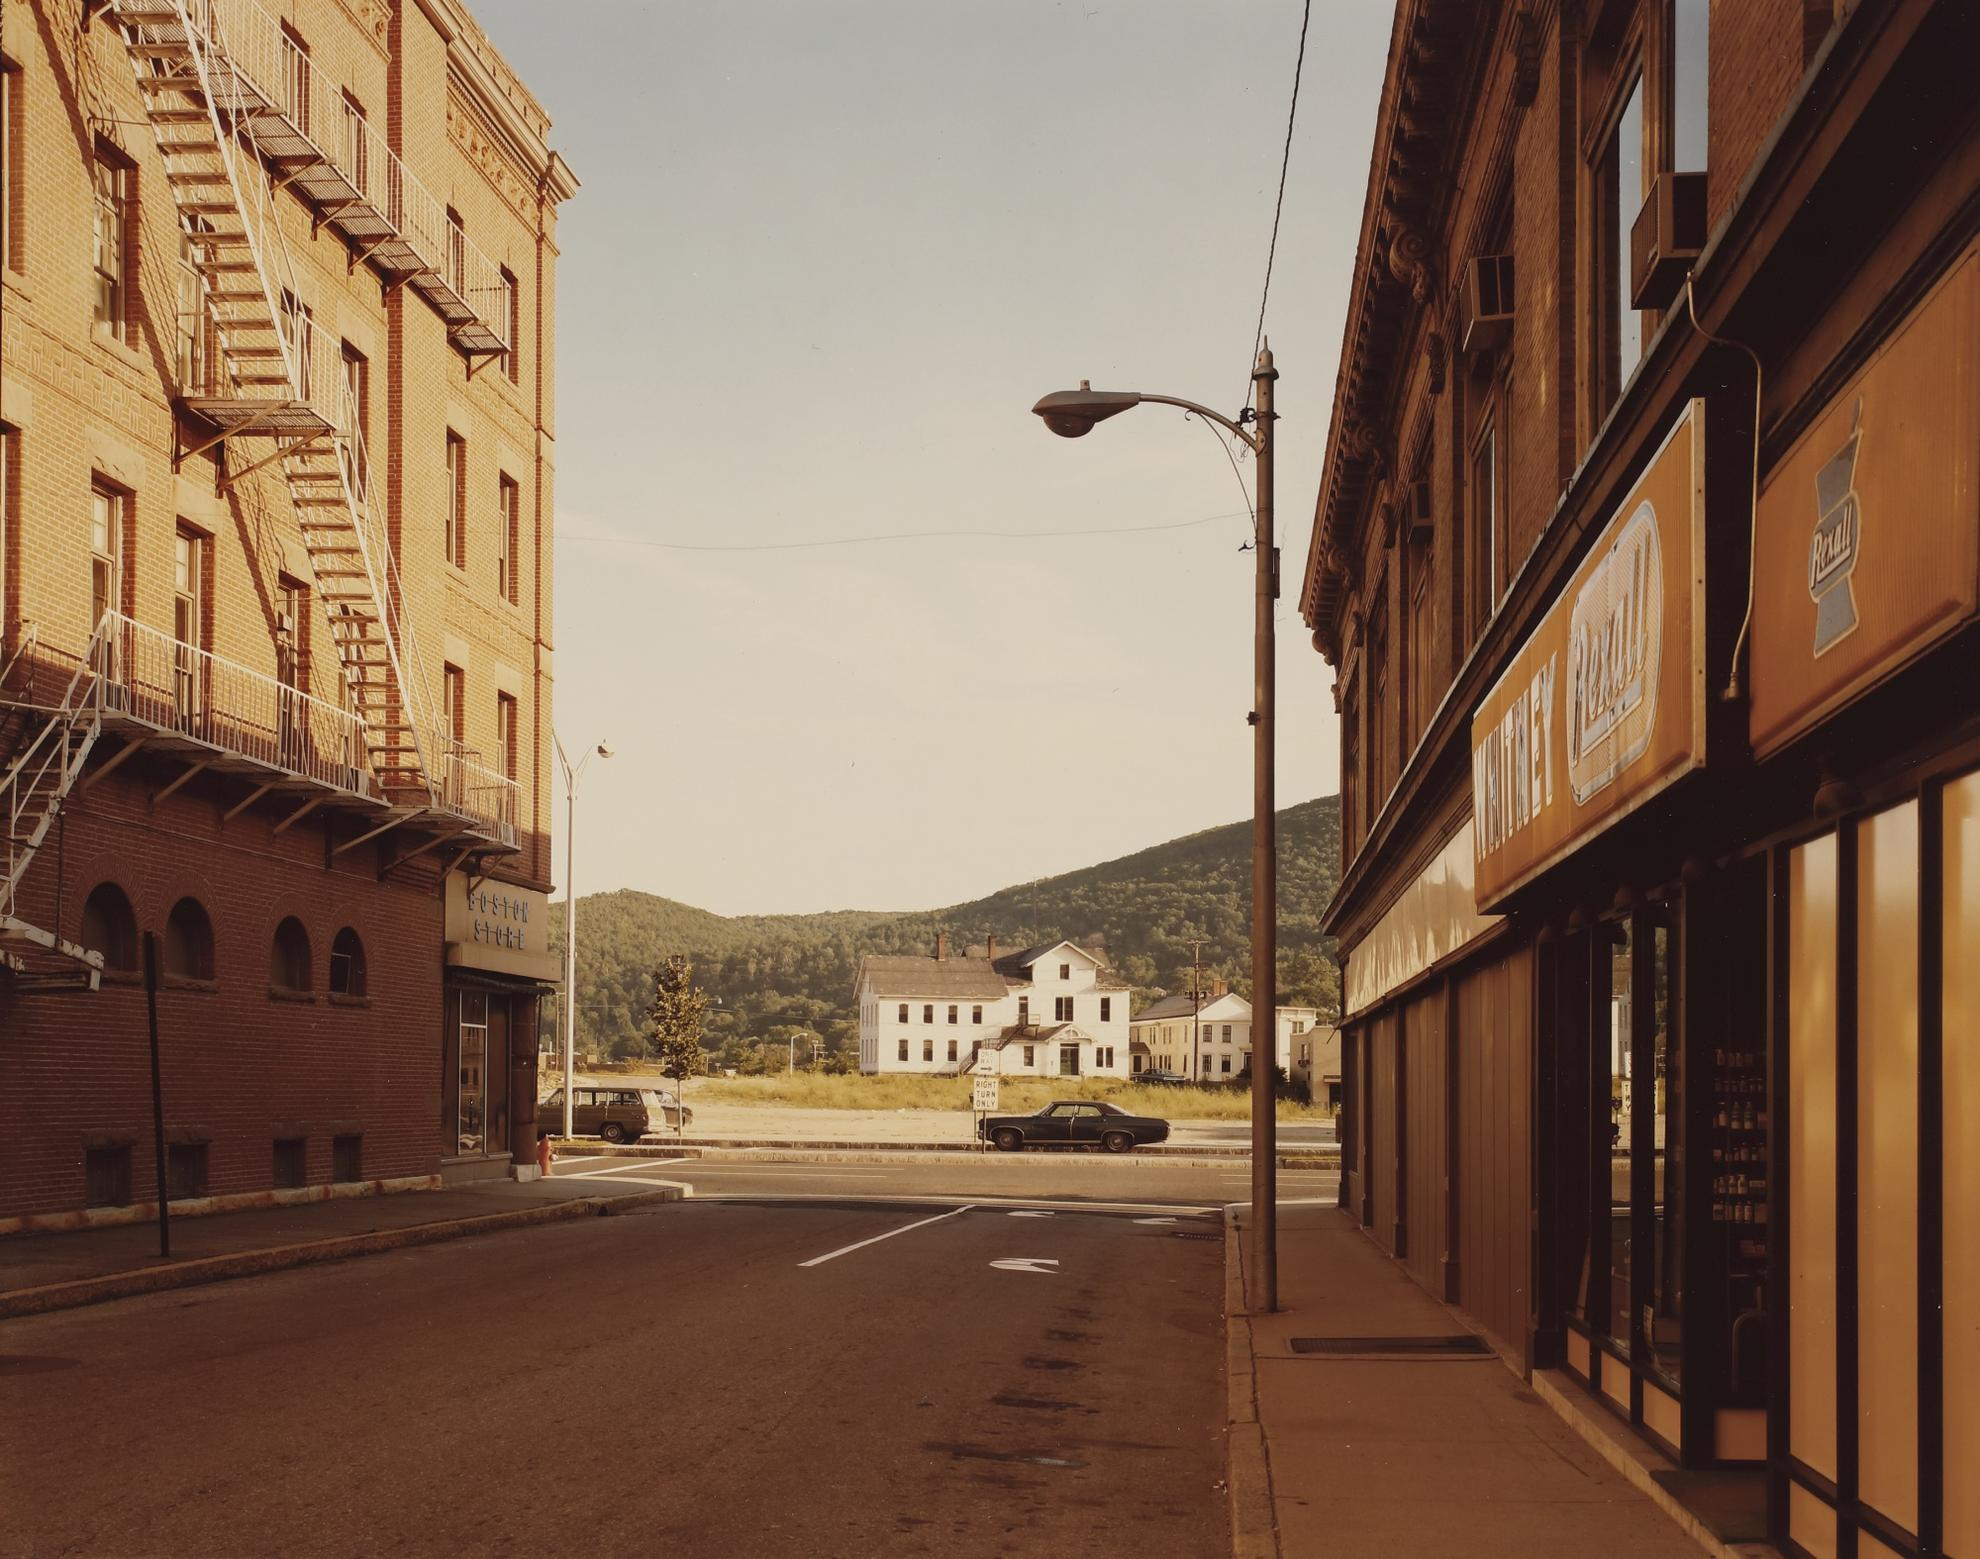 Stephen Shore-Holden Street, No. Adams, Mass. 7/13/74-1974